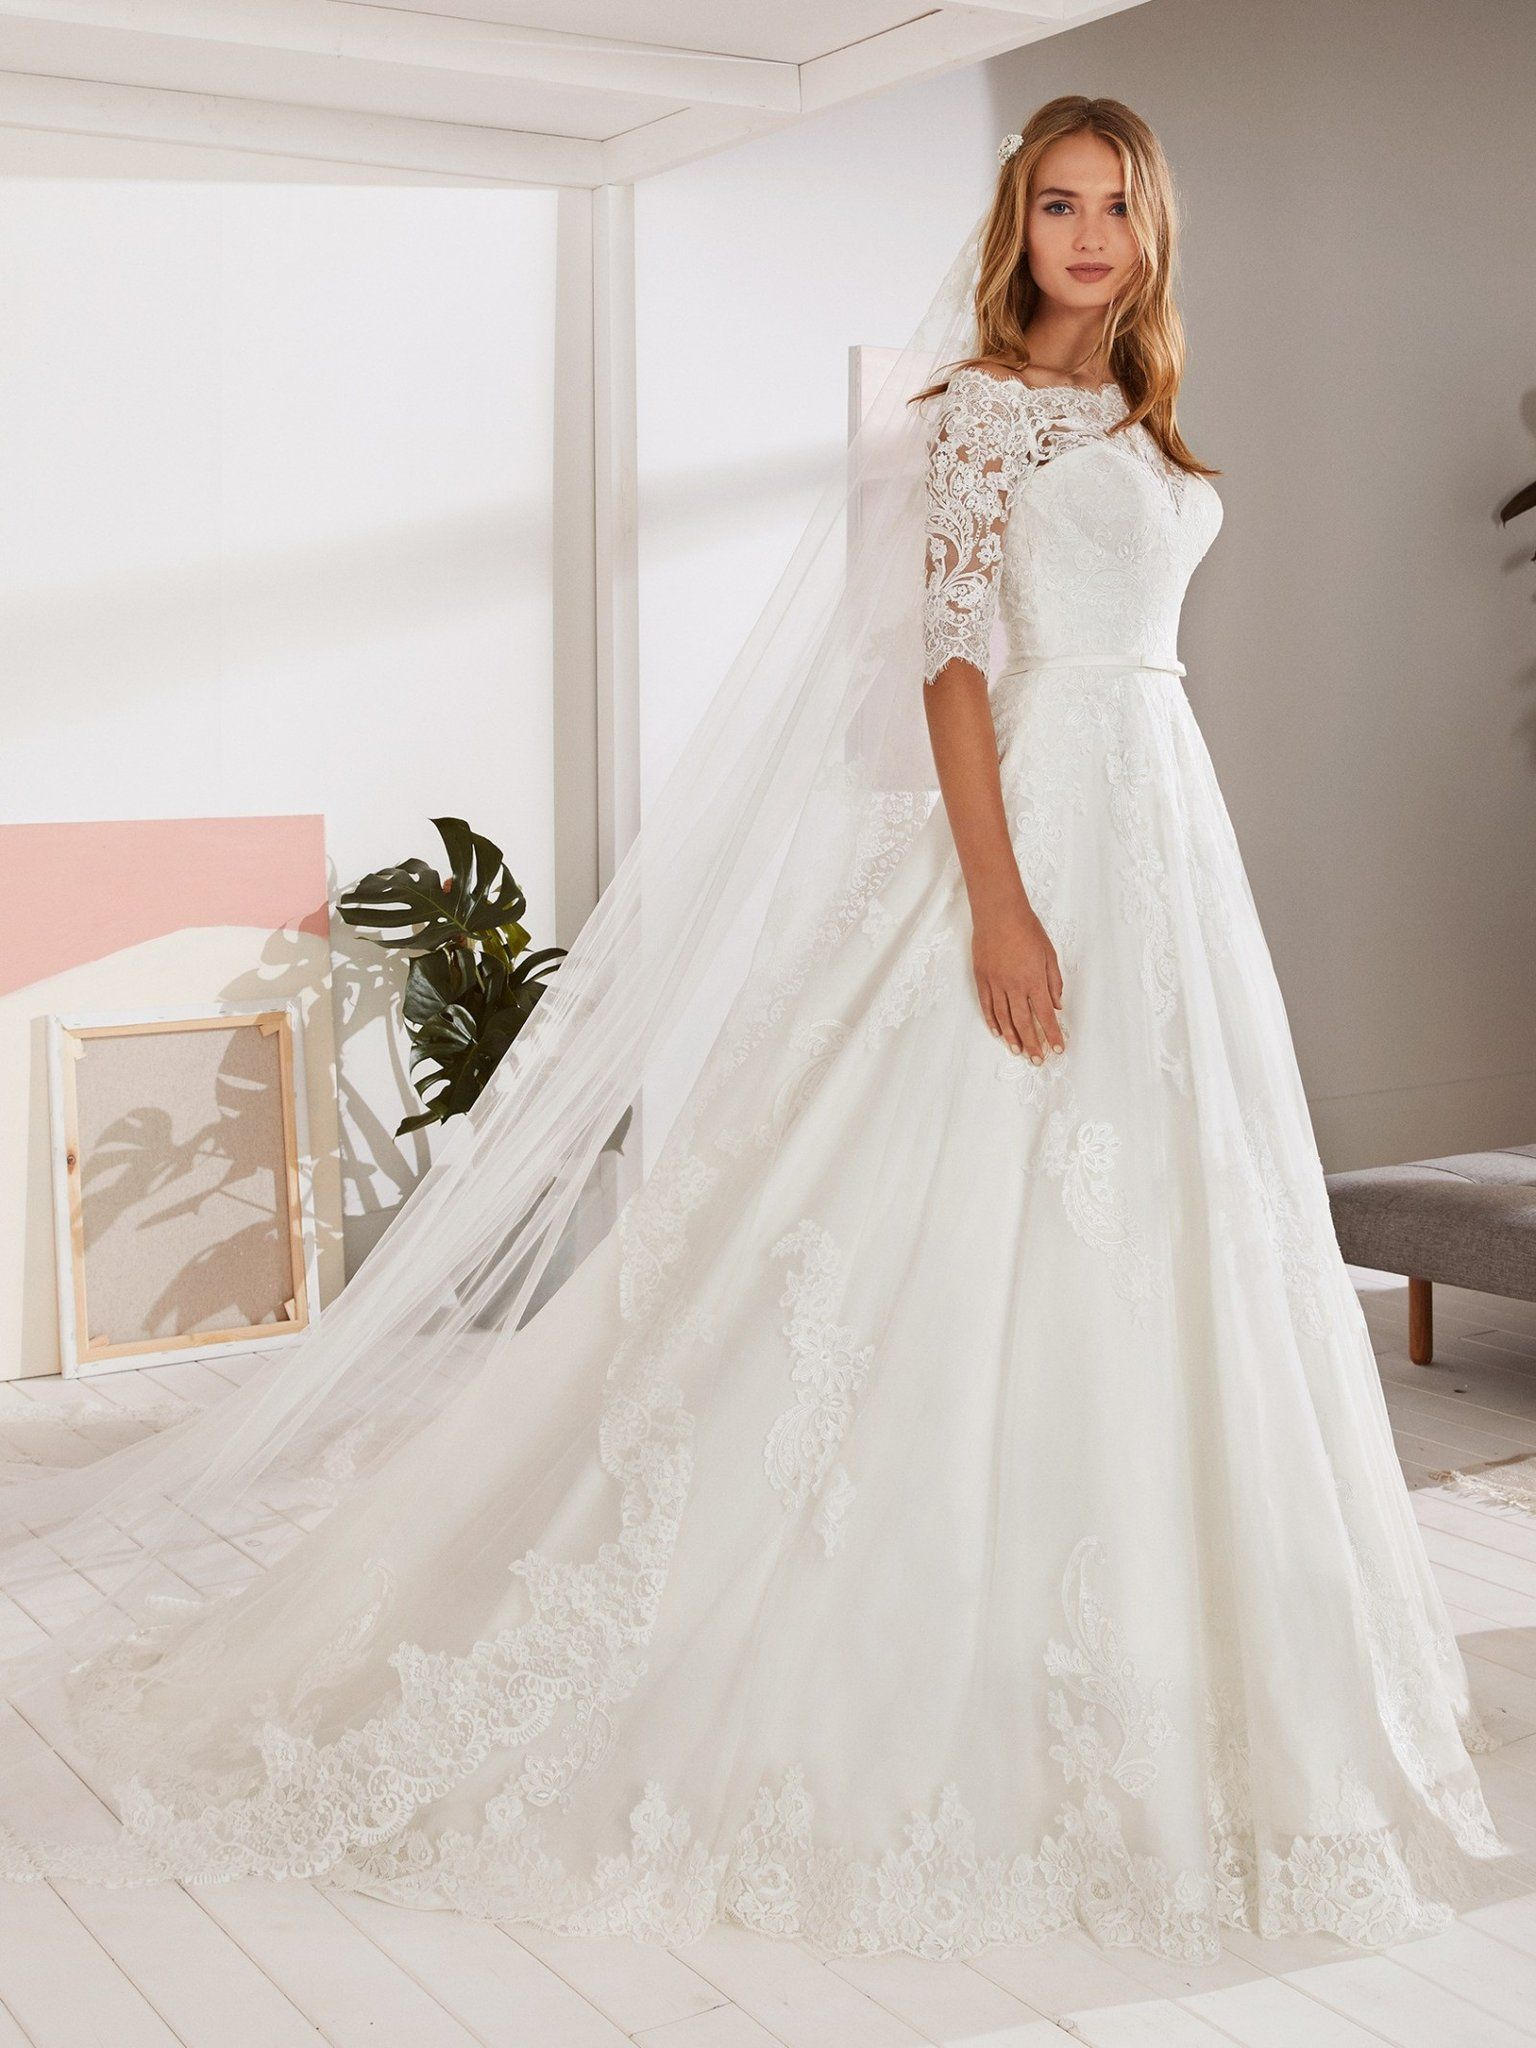 White One Ossa Size 28 Sheer Lace Off The Shoulder Wedding Dress Sleeves Ballgown In 2021 Lace Wedding Dress With Sleeves A Line Wedding Dress With Sleeves Wedding Dresses [ 2048 x 1536 Pixel ]